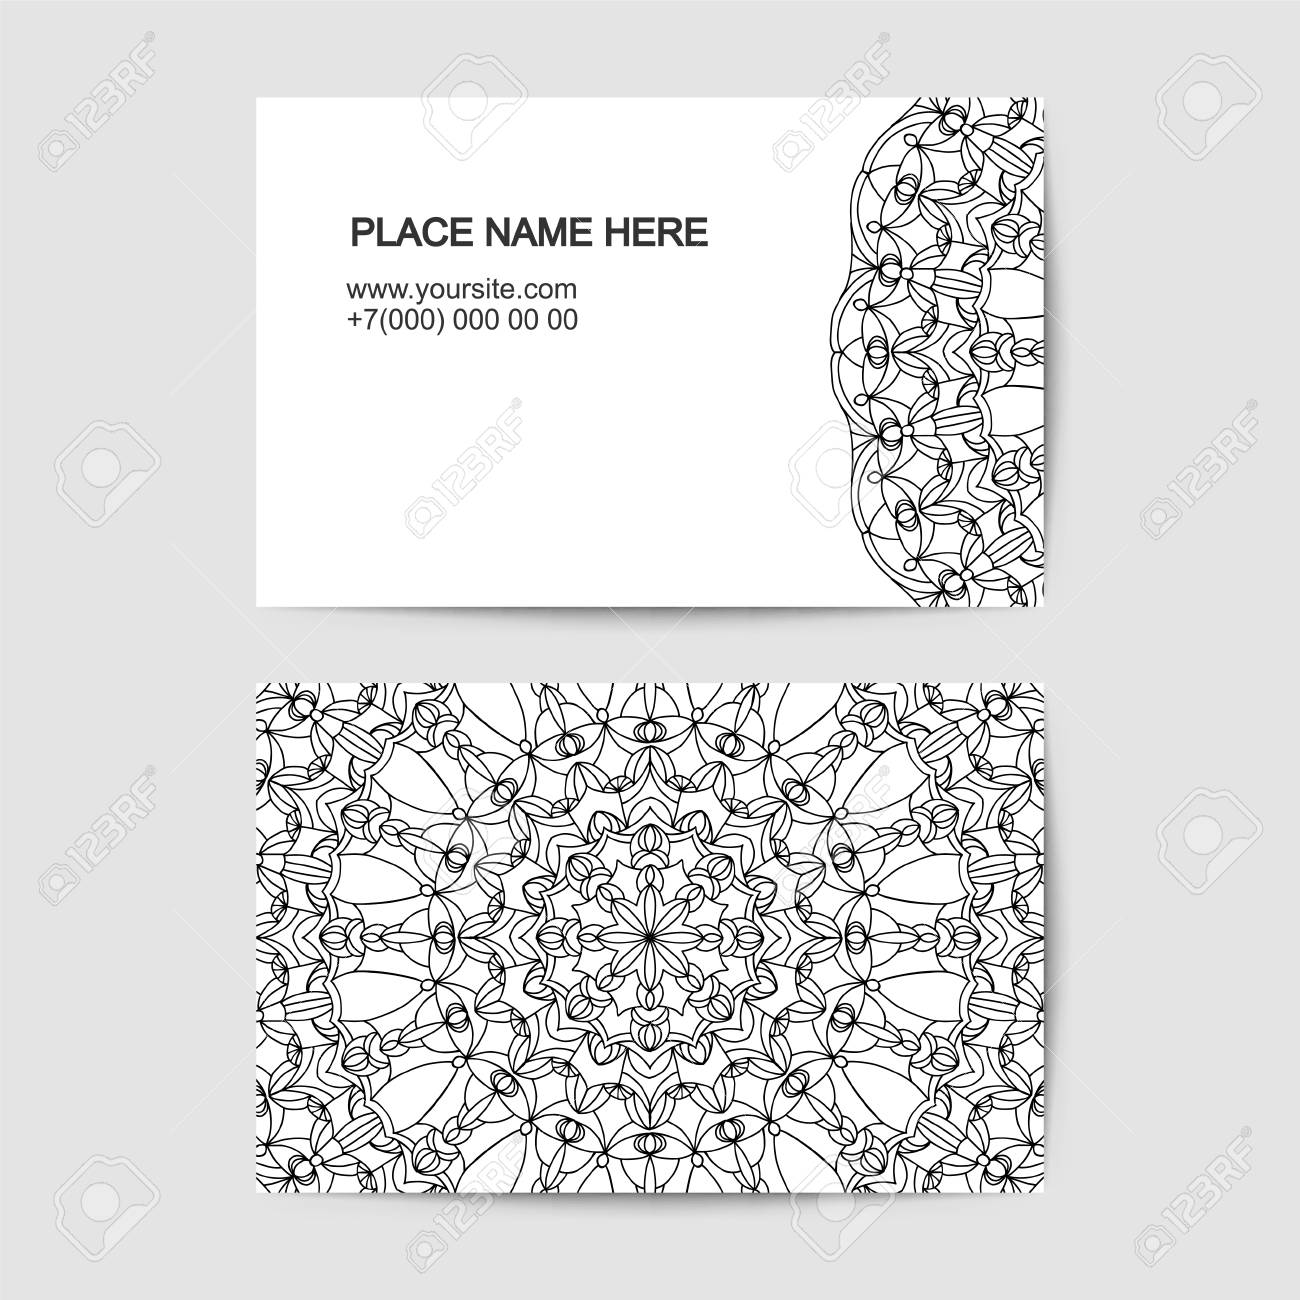 Visit Card Vector Template With Lace Vector Pattern Royalty Free ...